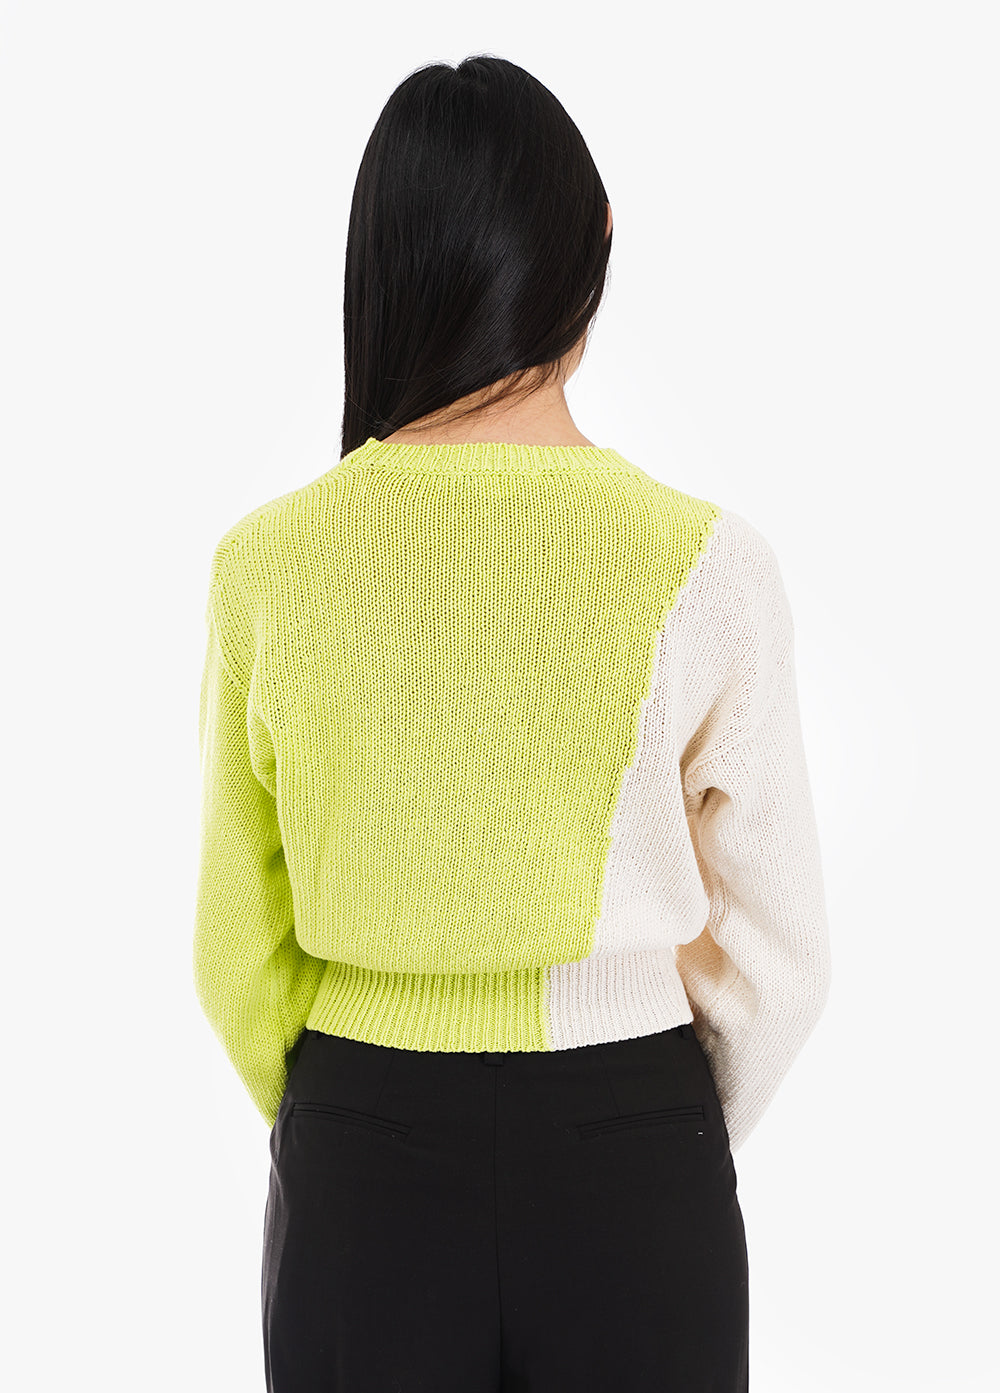 Paloma Wool Camu Sweater — Shop sustainable fashion and slow fashion at New Classics Studios